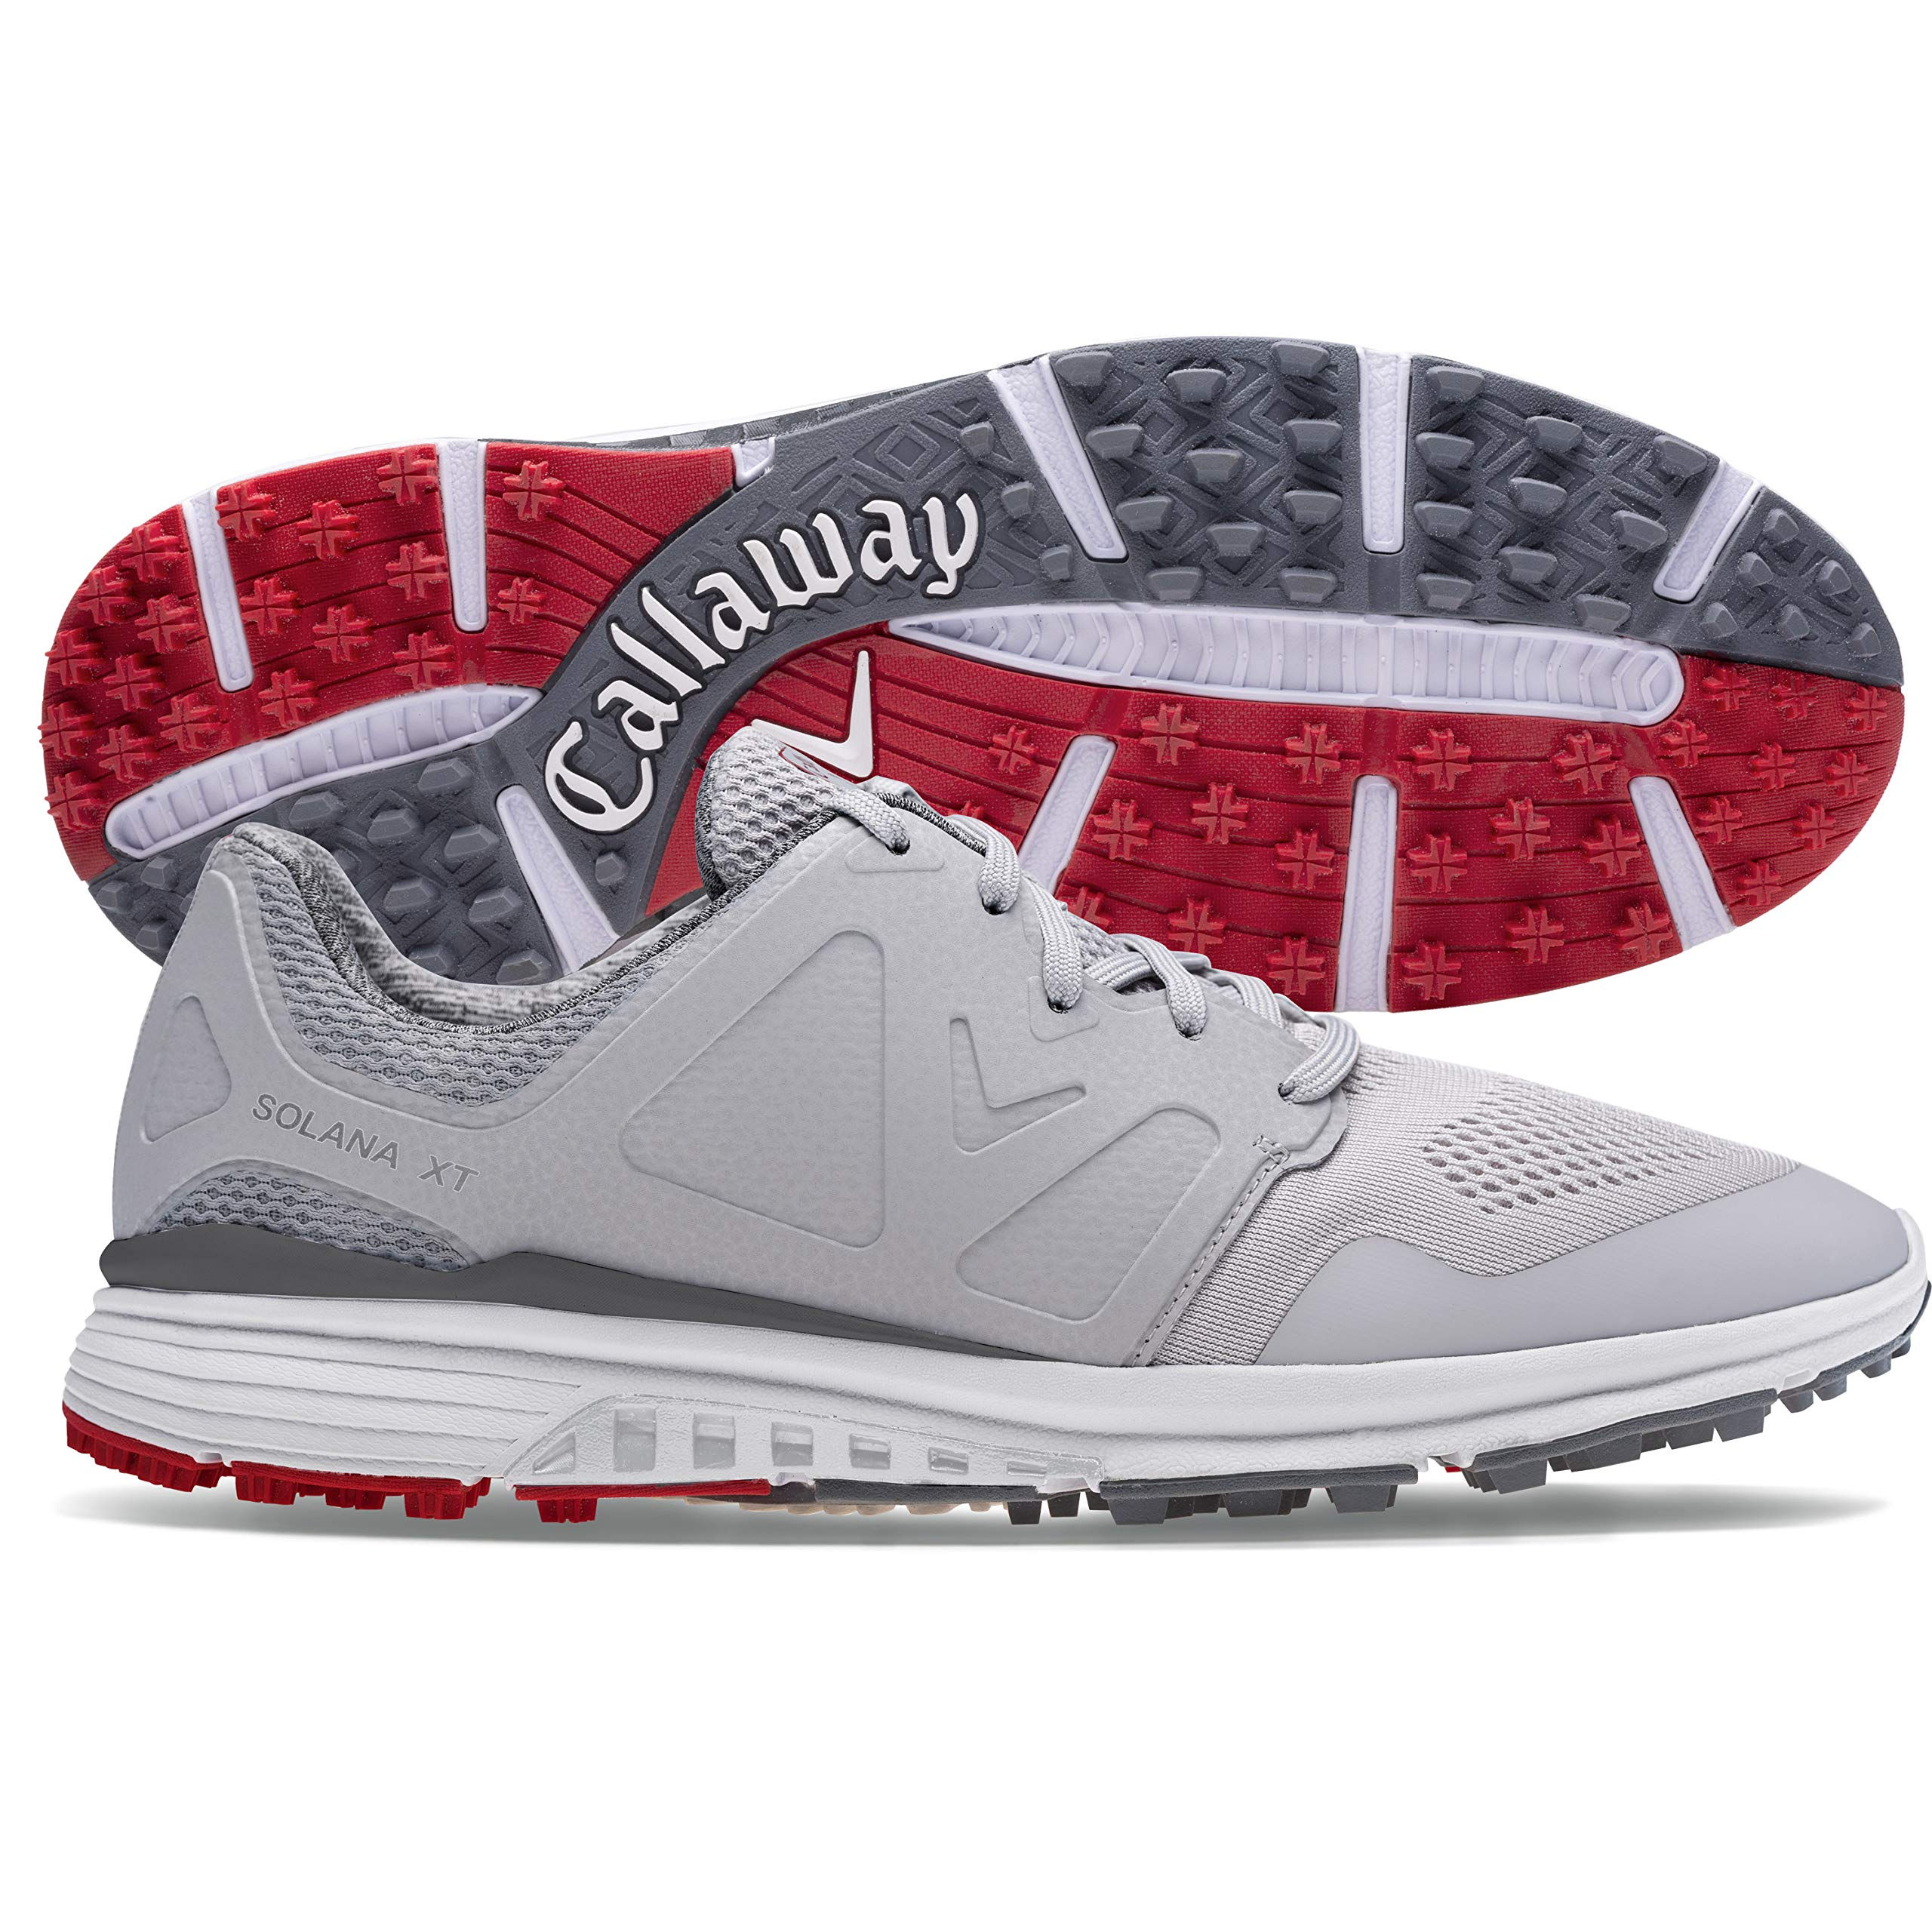 Callaway Men's Solana XT Golf Shoes